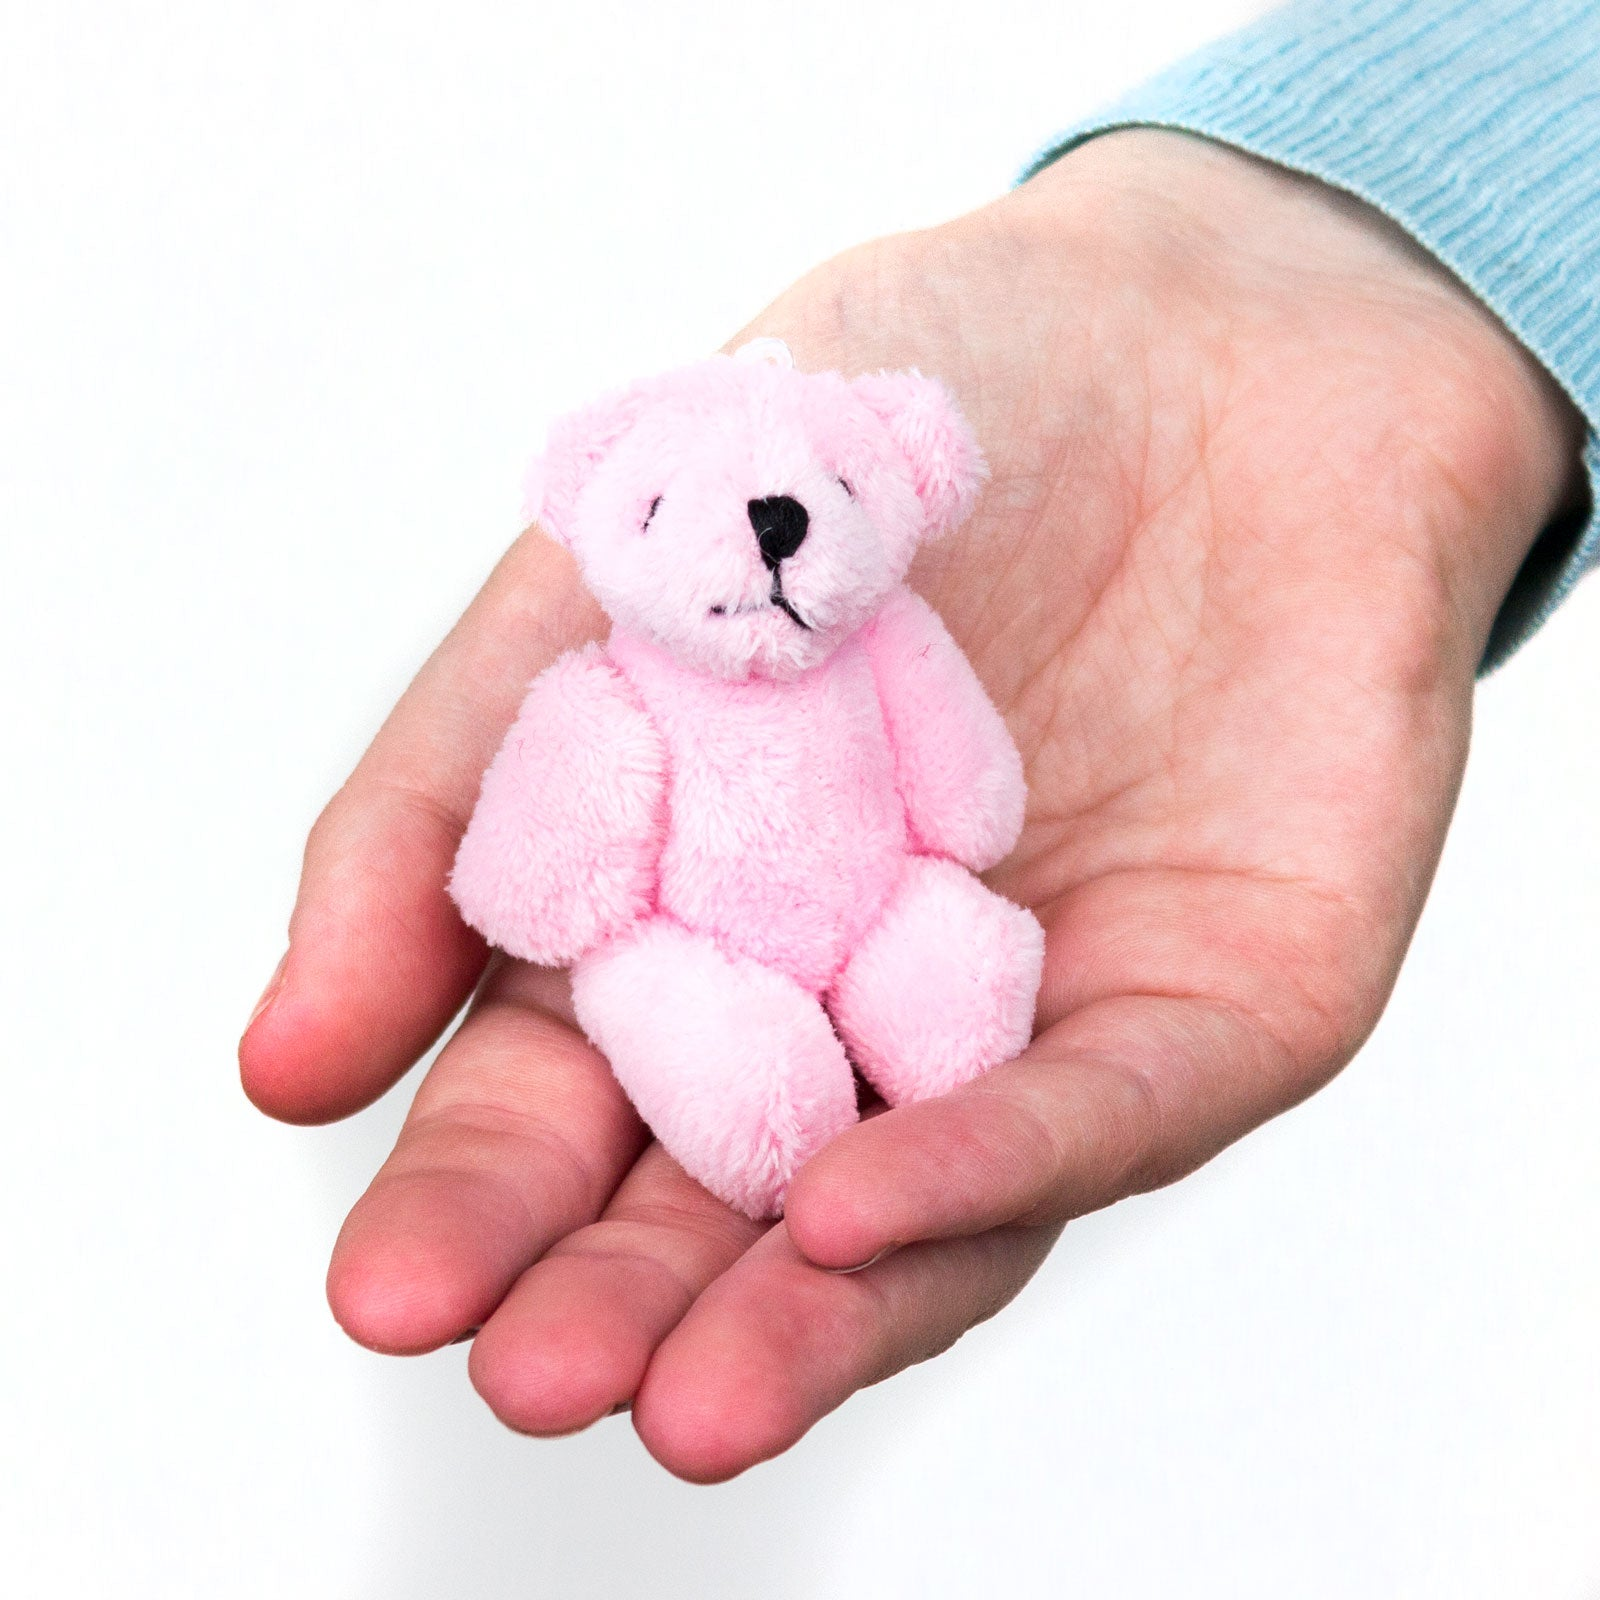 Small PINK Teddy Bears X 20 - Cute Soft Adorable